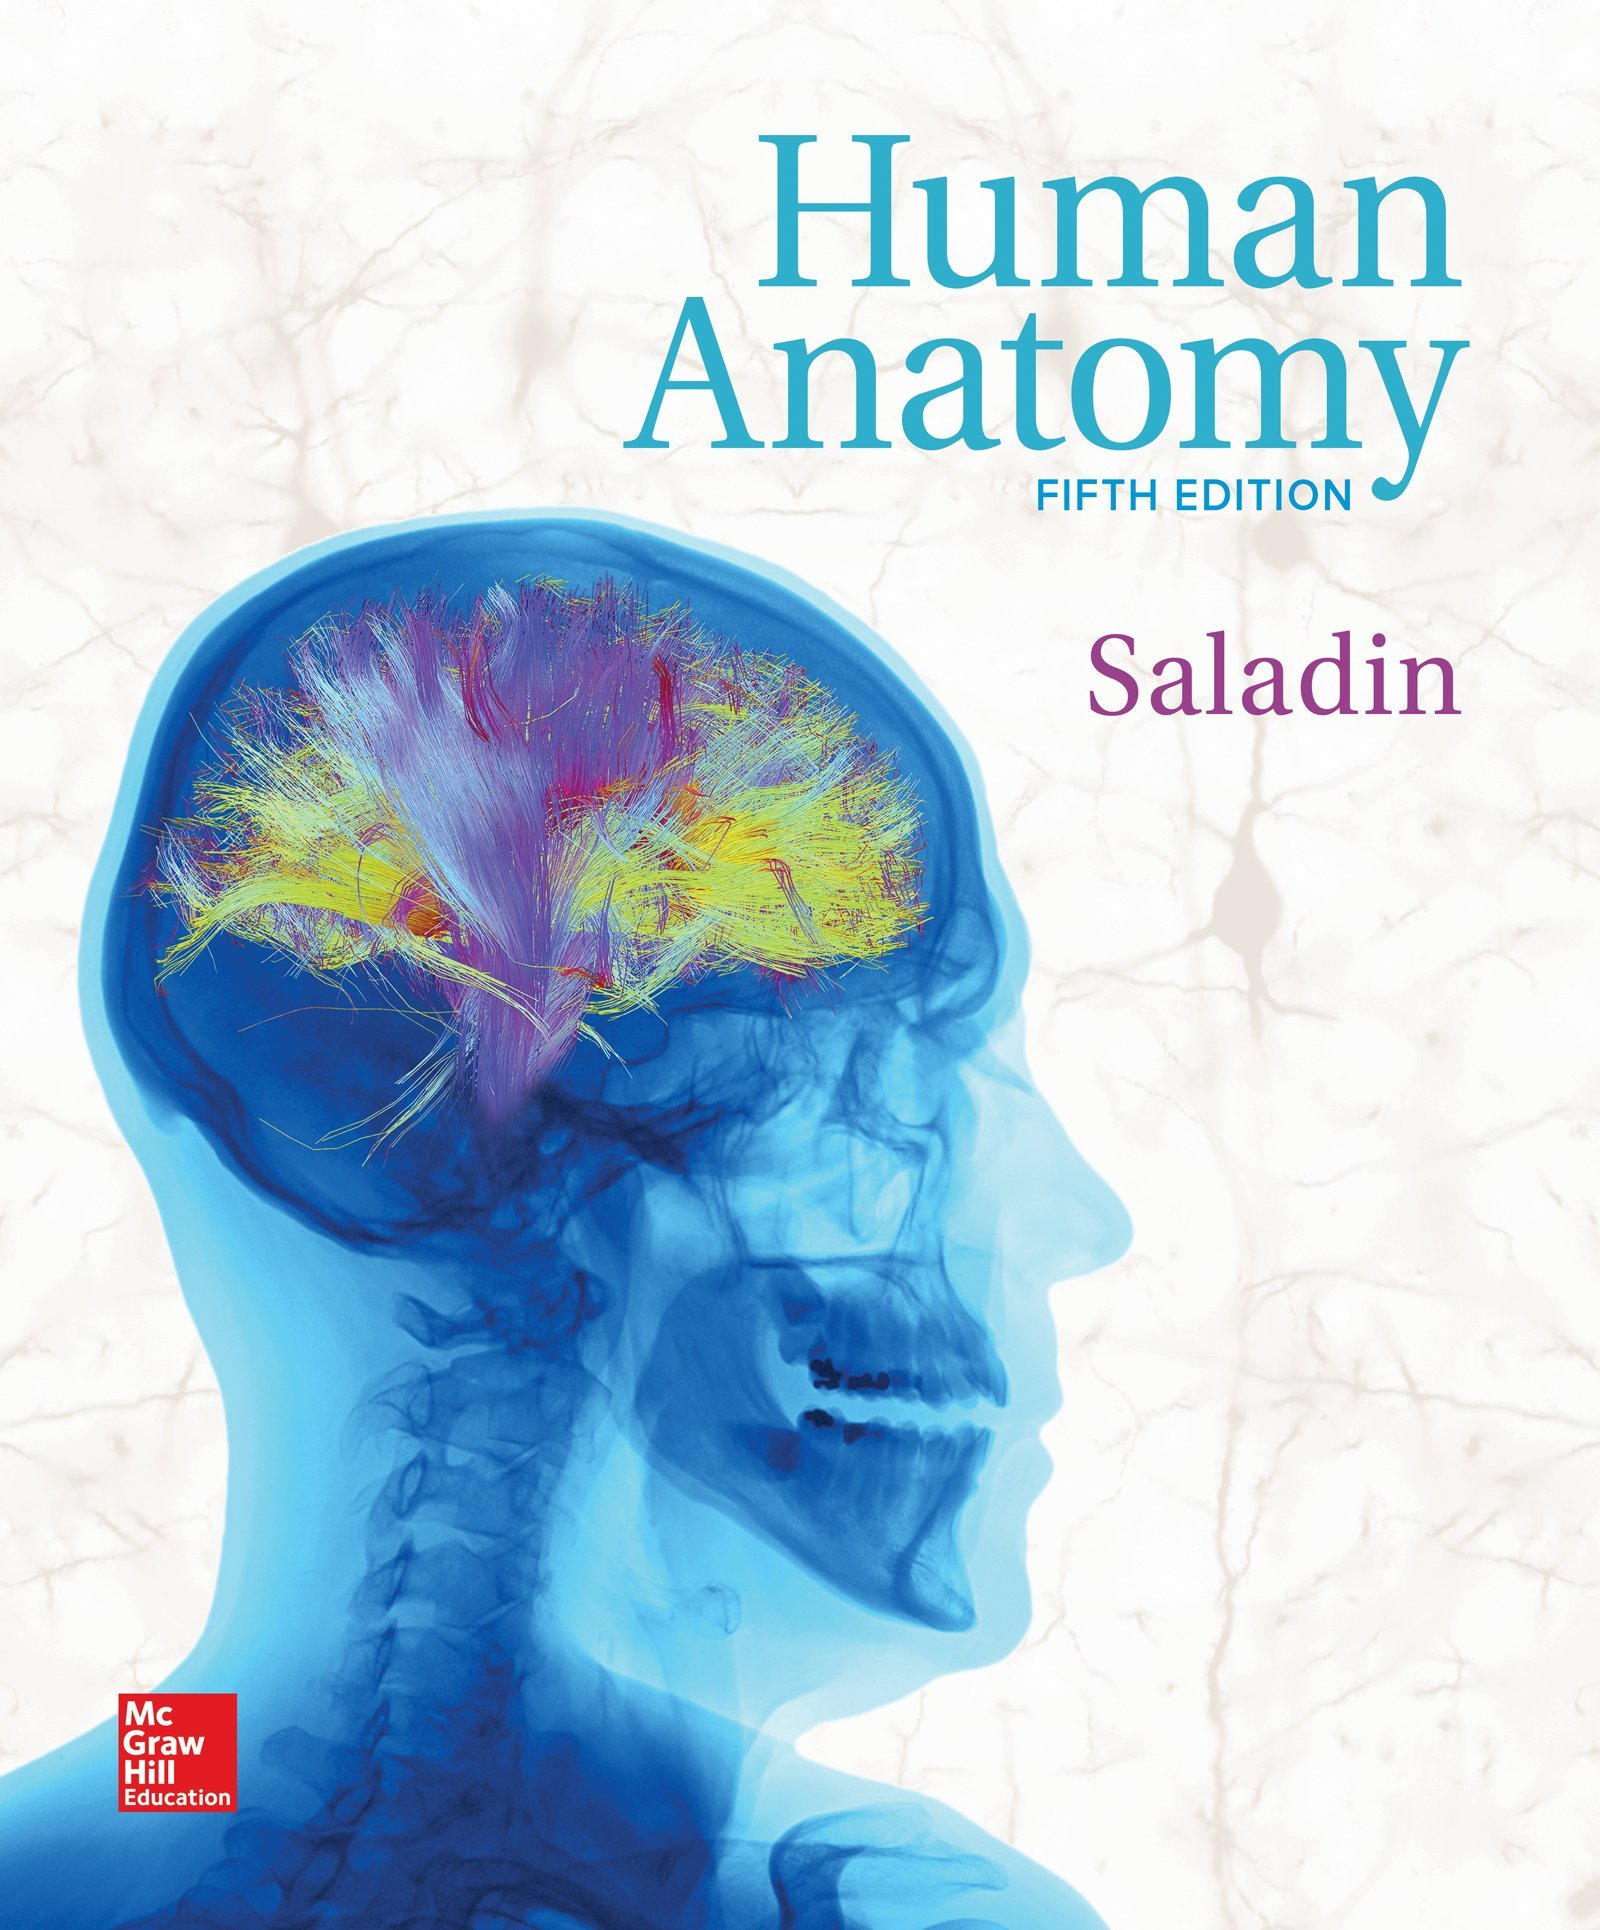 Human Anatomy: Amazon.co.uk: Kenneth S Saladin Dr: 9780073403700: Books